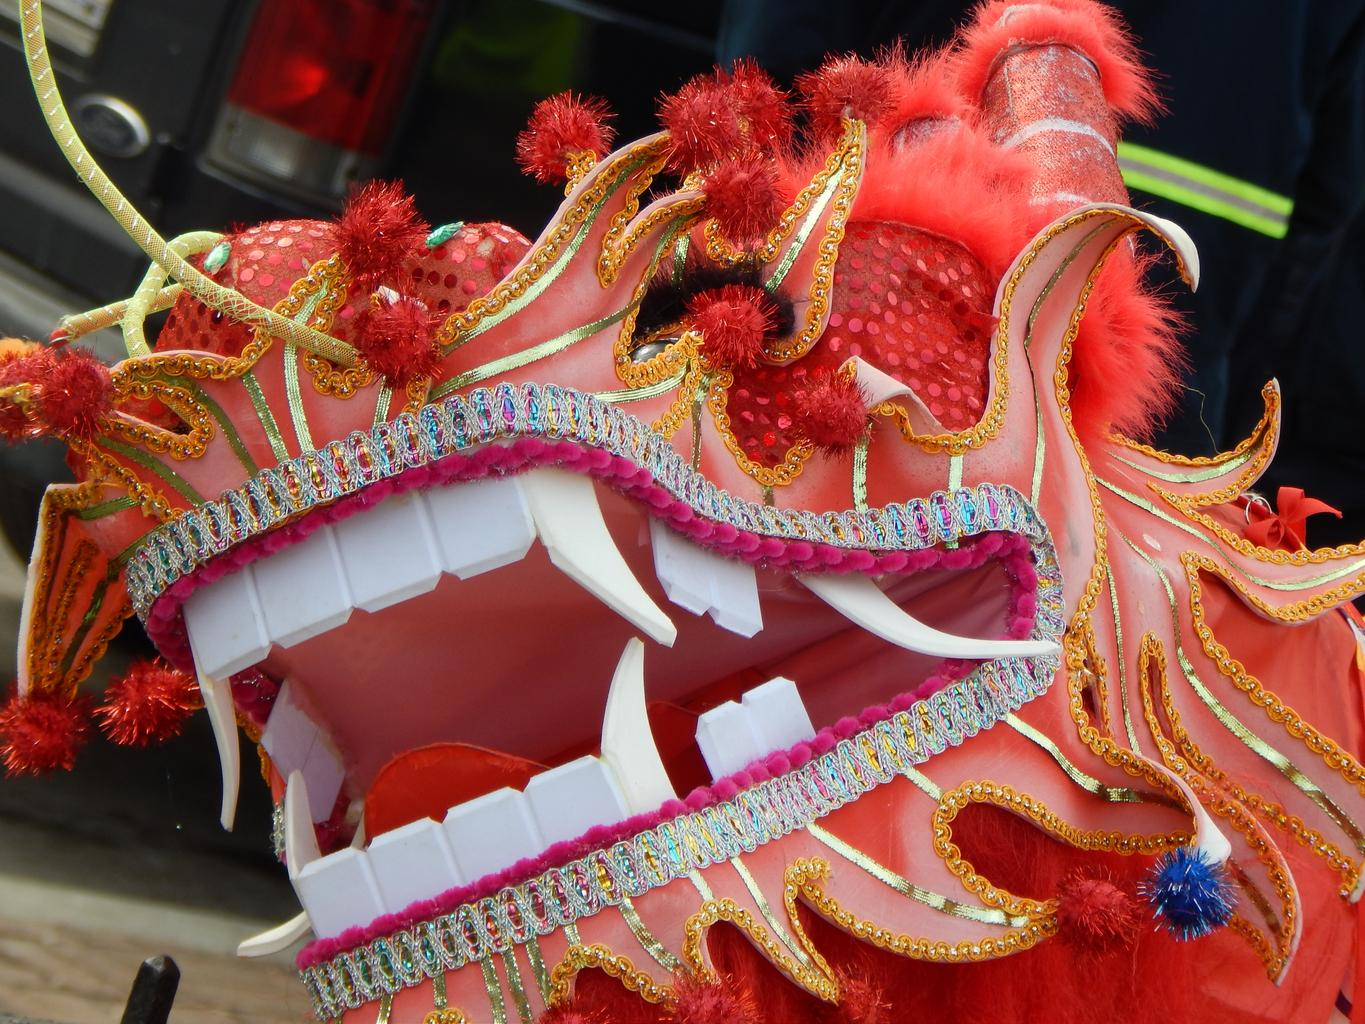 Chinese New Year Celebrations on Koh Phangan – Vibrant Display of Fireworks and Lots of Excitement!